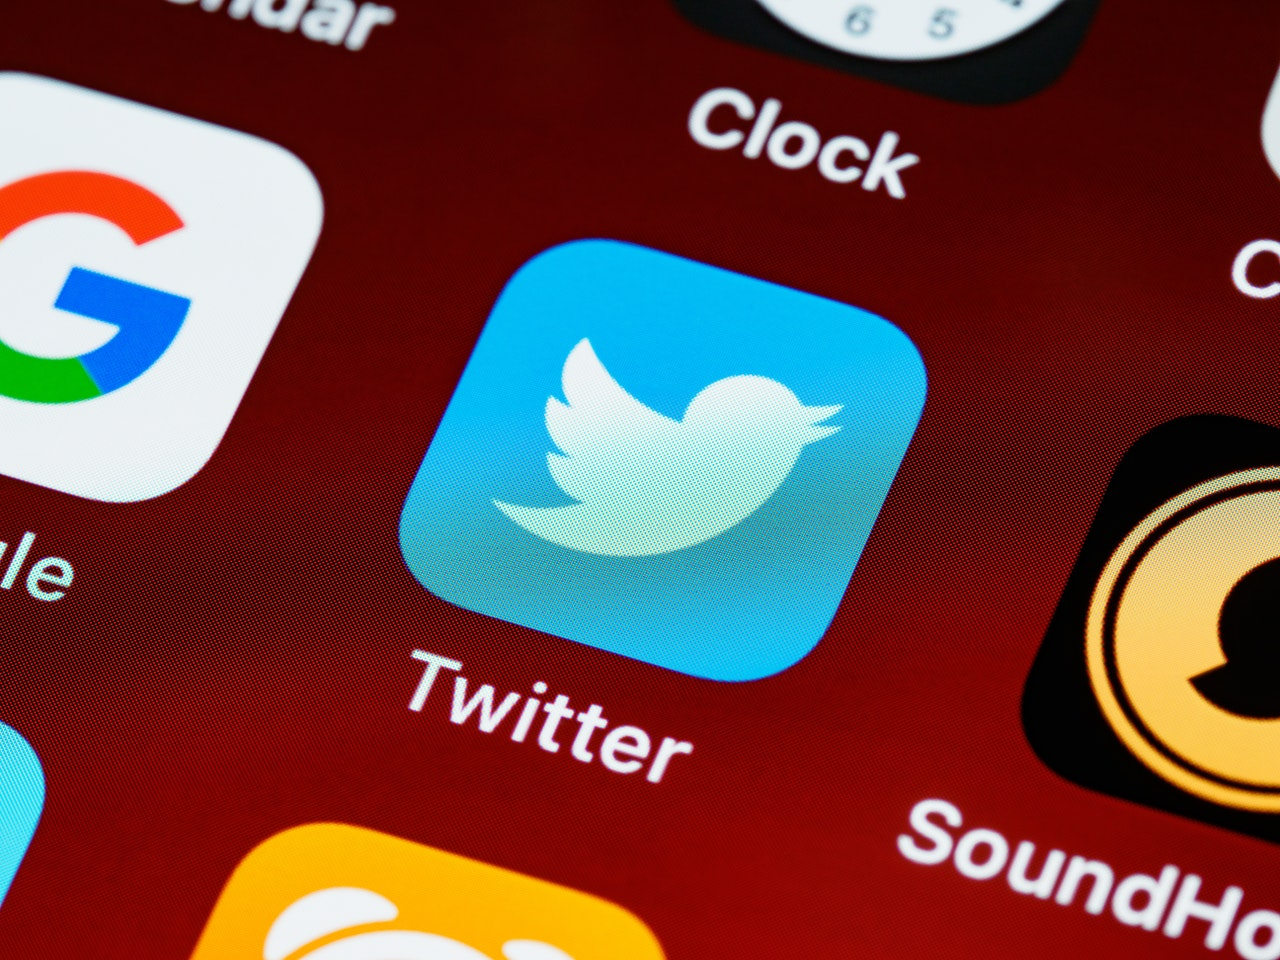 5 Counterproductive Things Writers Should Stop Doing On Twitter